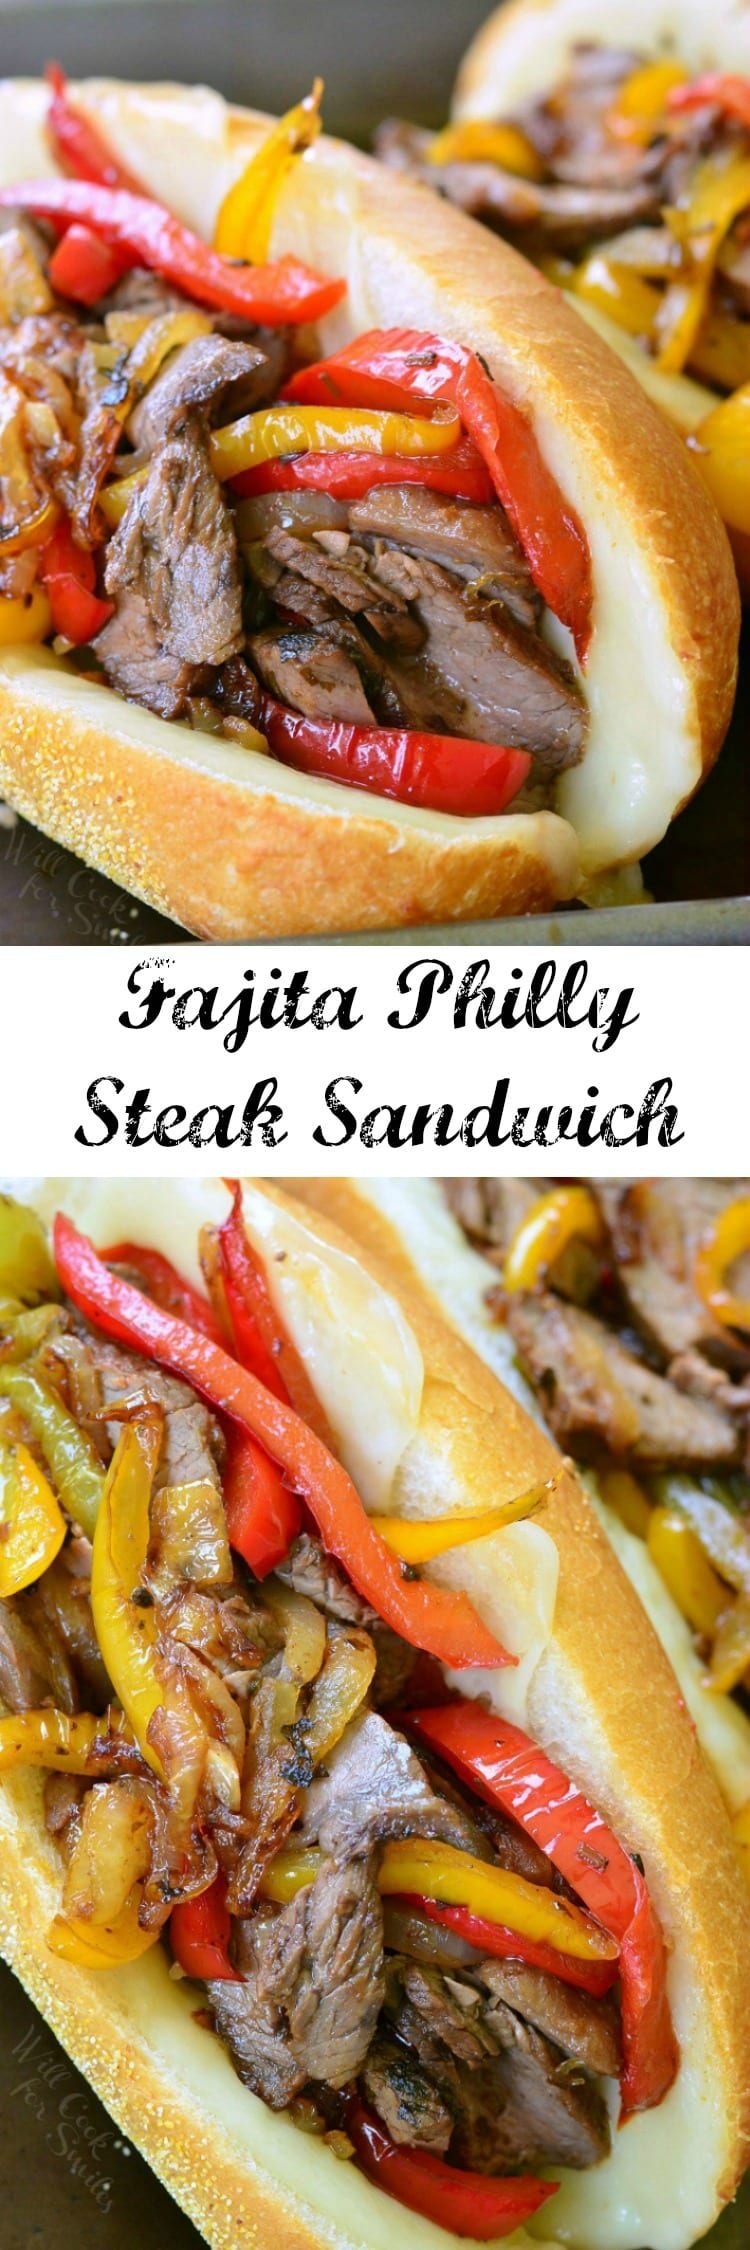 Fajita Philly Steak Sandwich. Steak and veggies cooked in a flavorful marinade, combined with some gooey cheese, and served on a toasted hoagie roll.